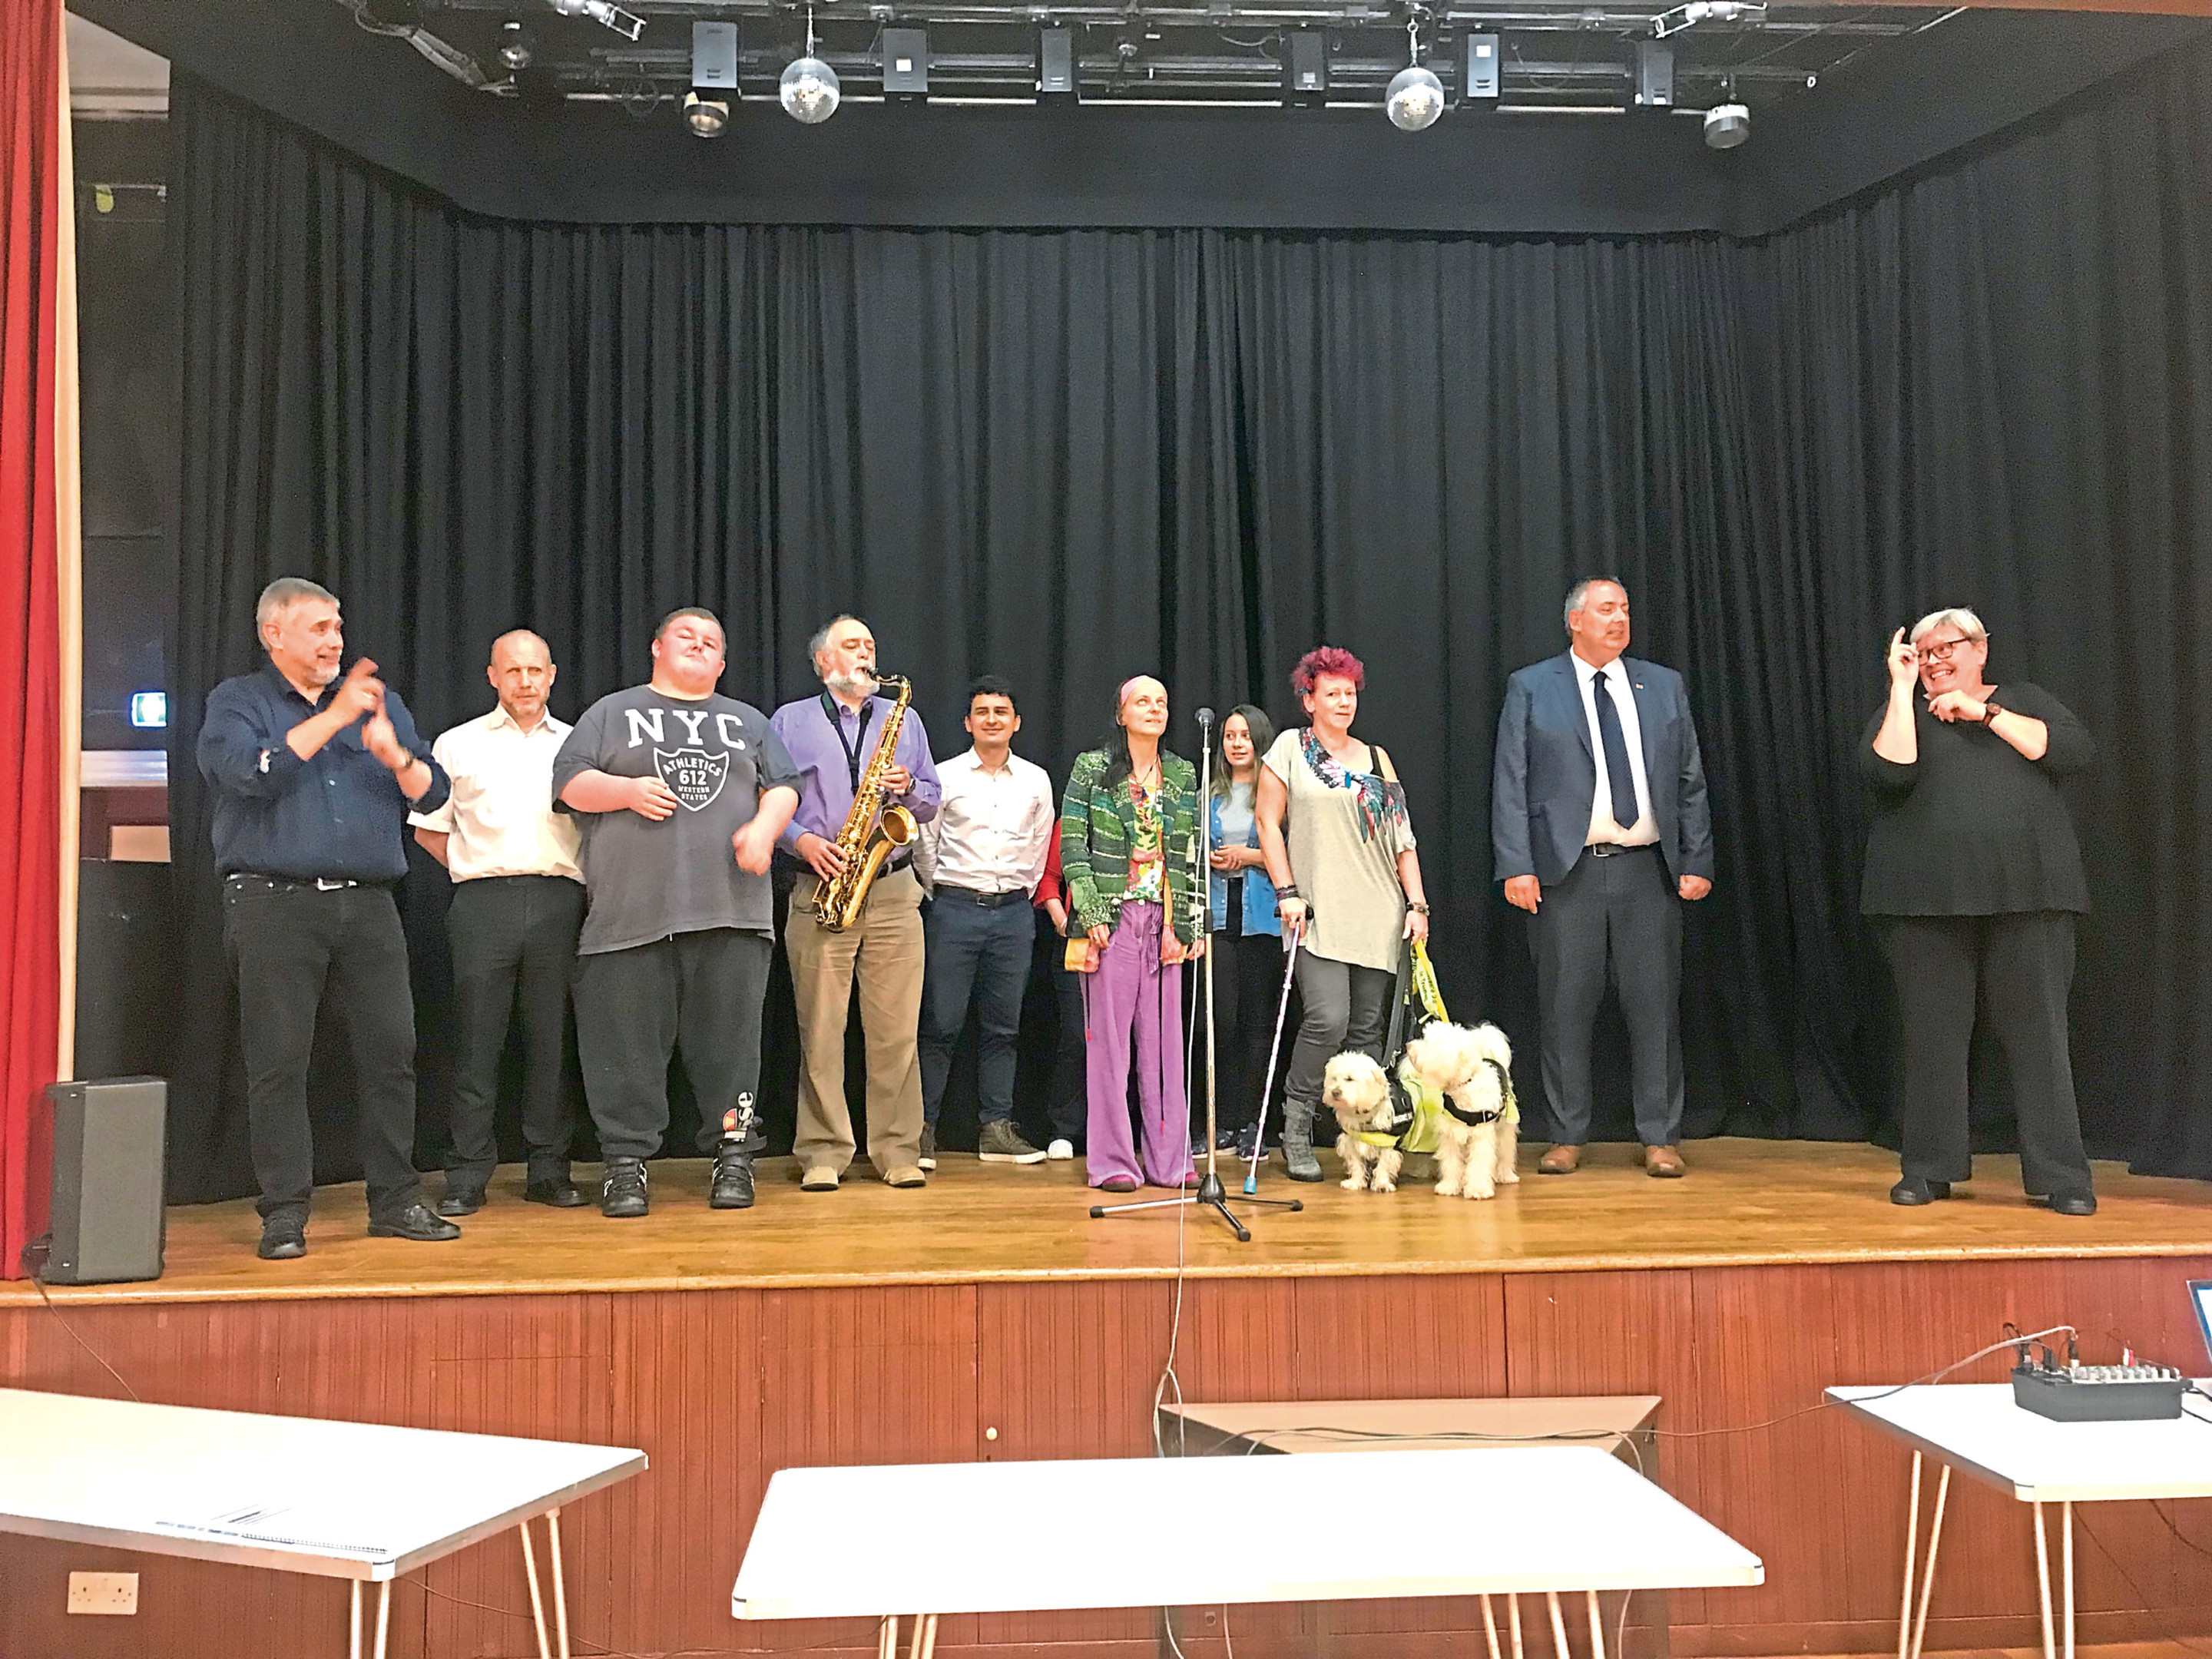 Some of the service users on stage during the rehearsal